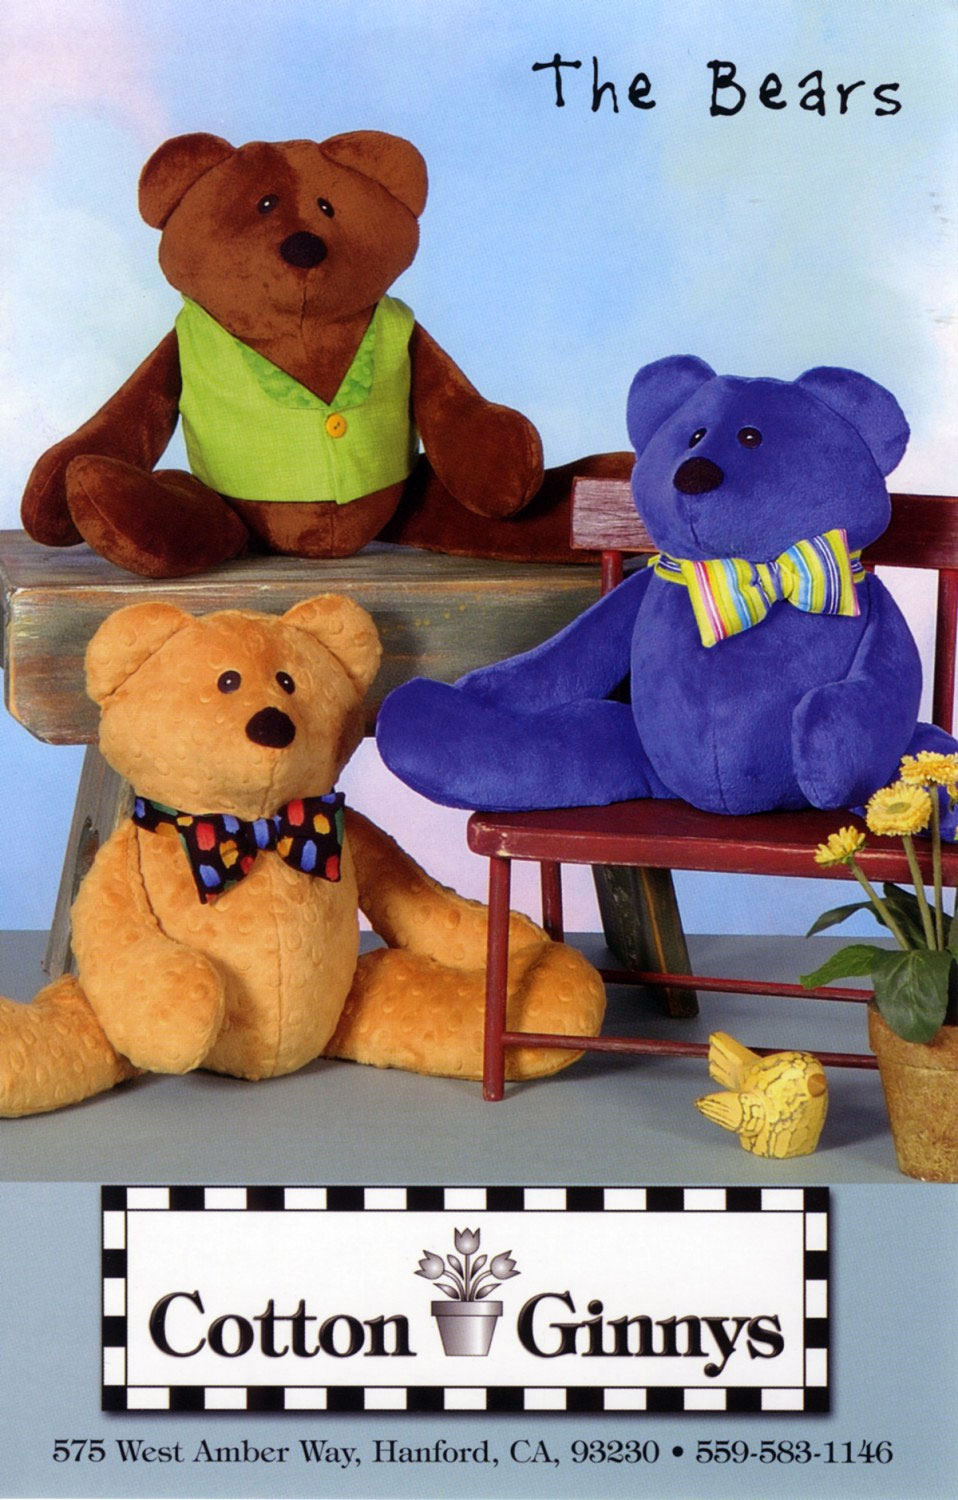 The-Bears-sewing-pattern-Cotton-Ginnys-front